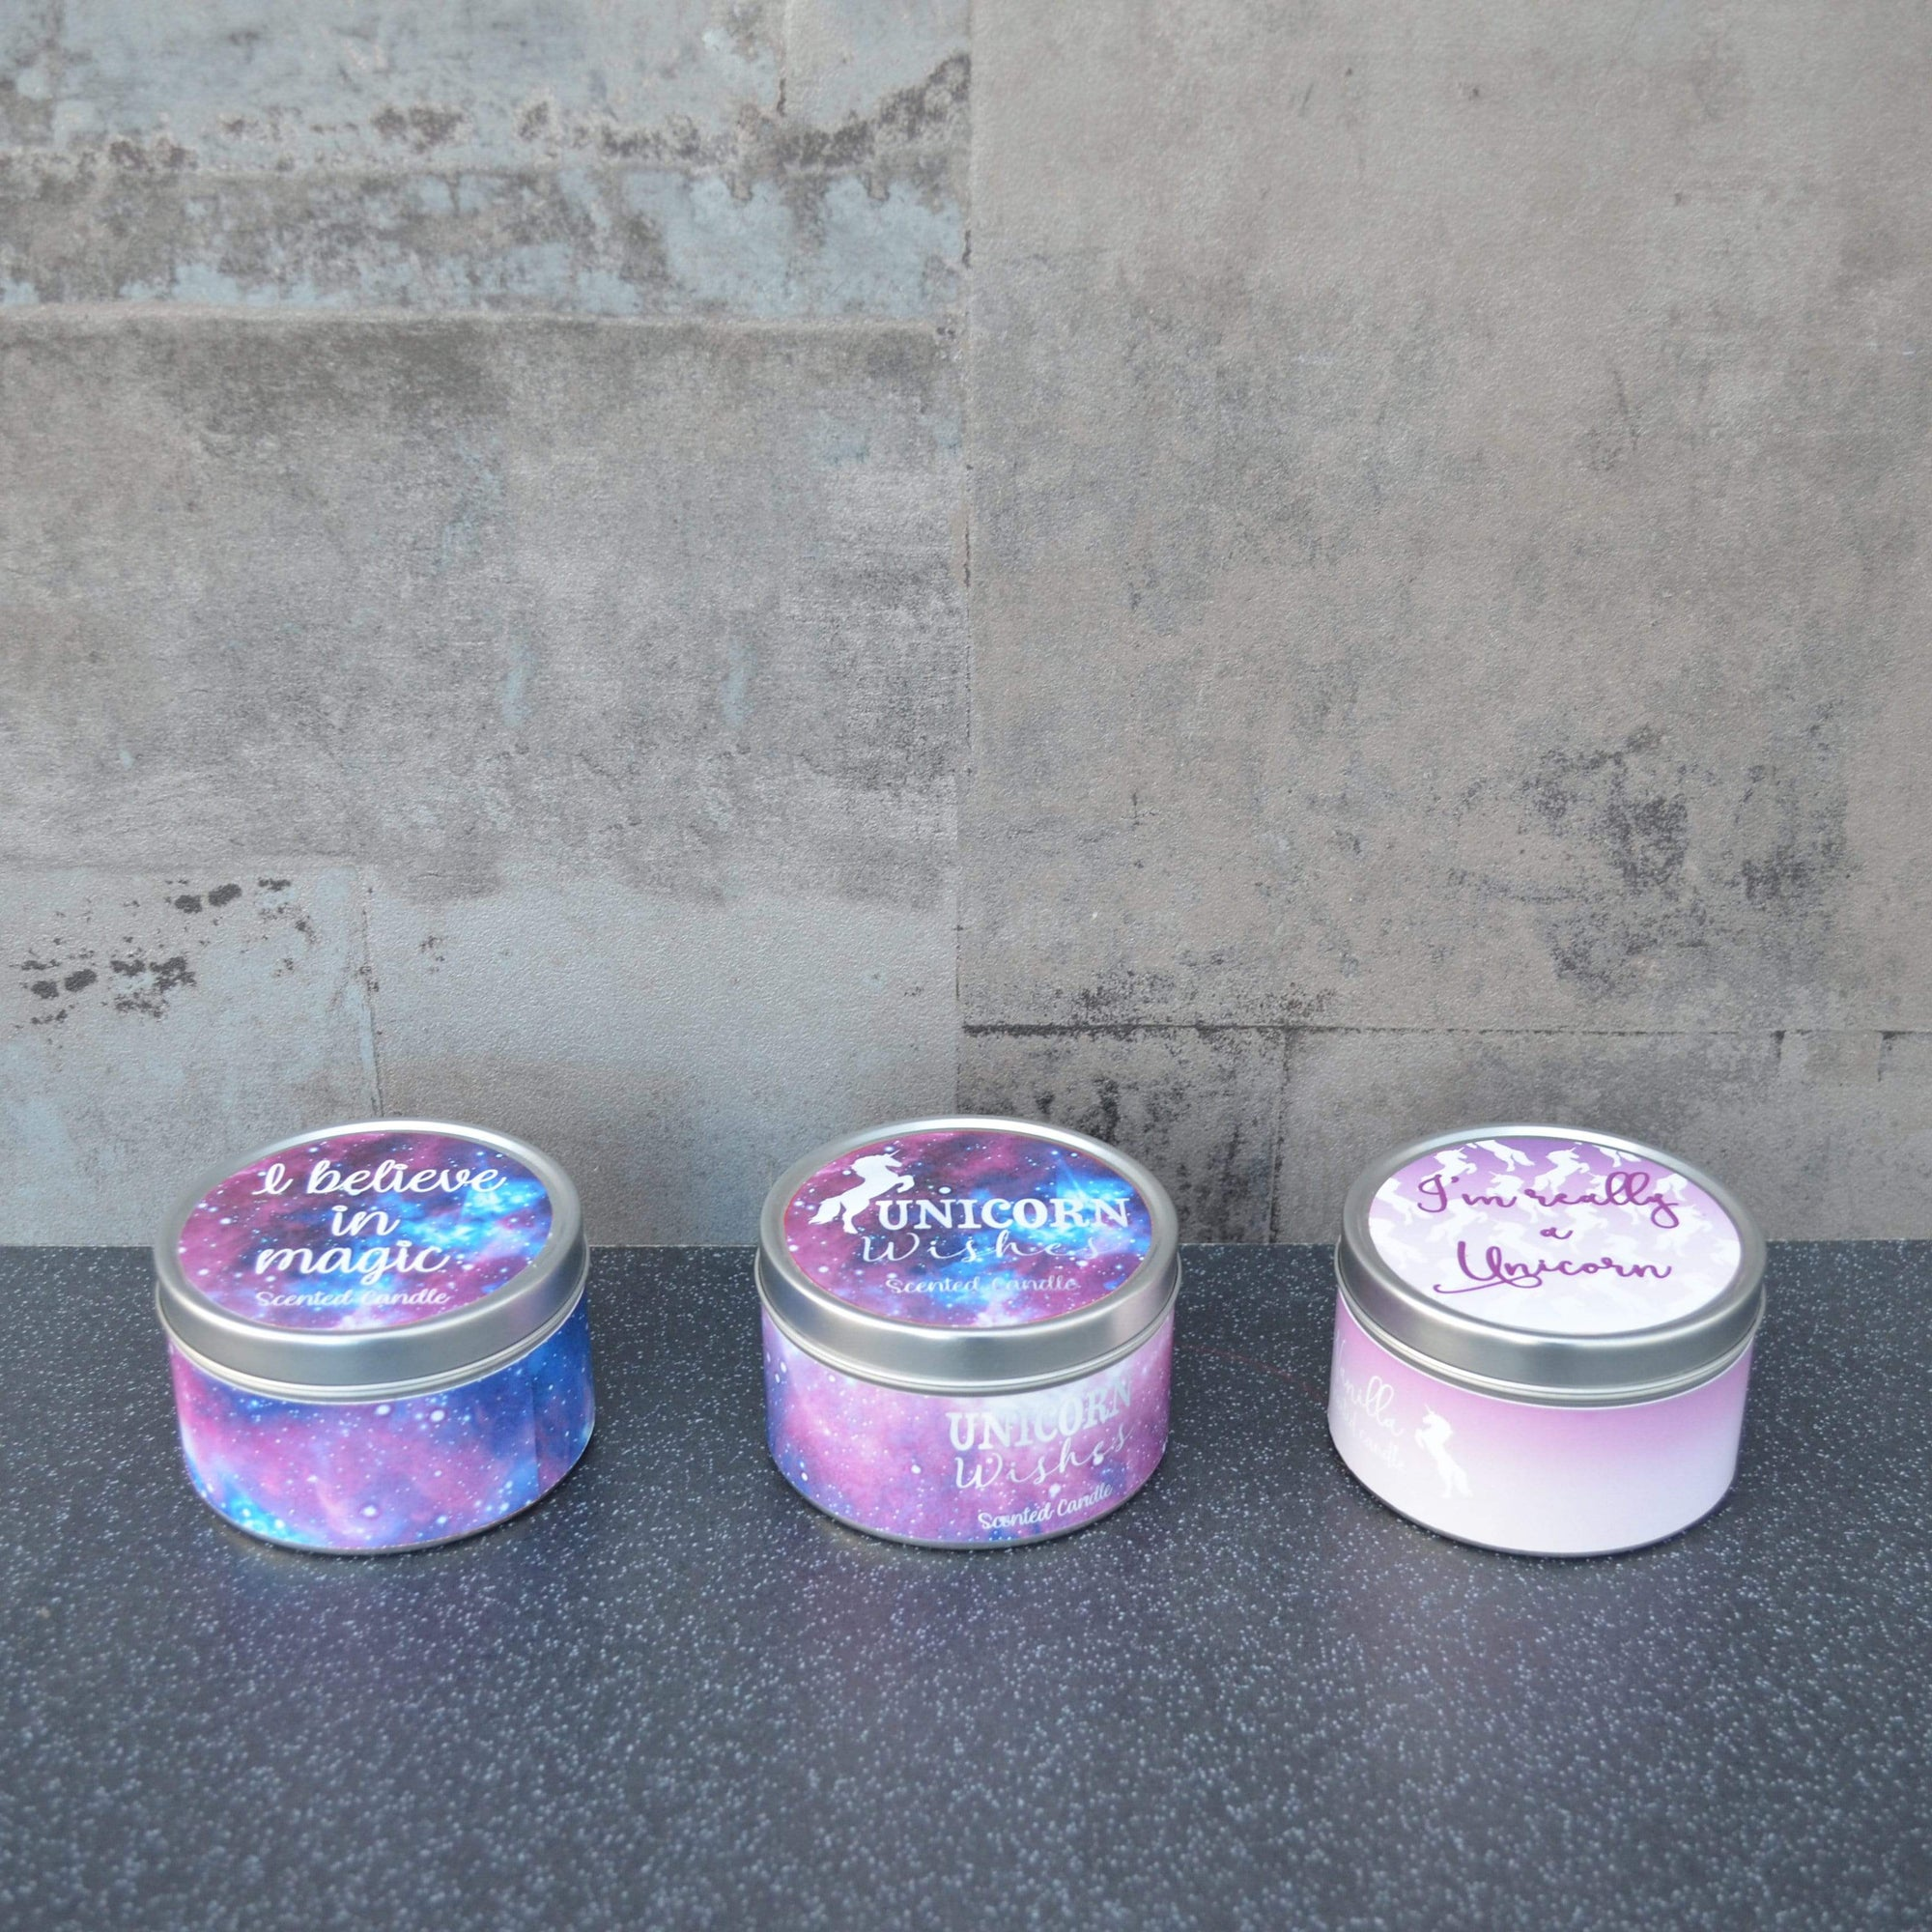 Candlelight Home Tin Candle Assorted Medium Wax Filled Tin Candles Various Scents 125g 6PK